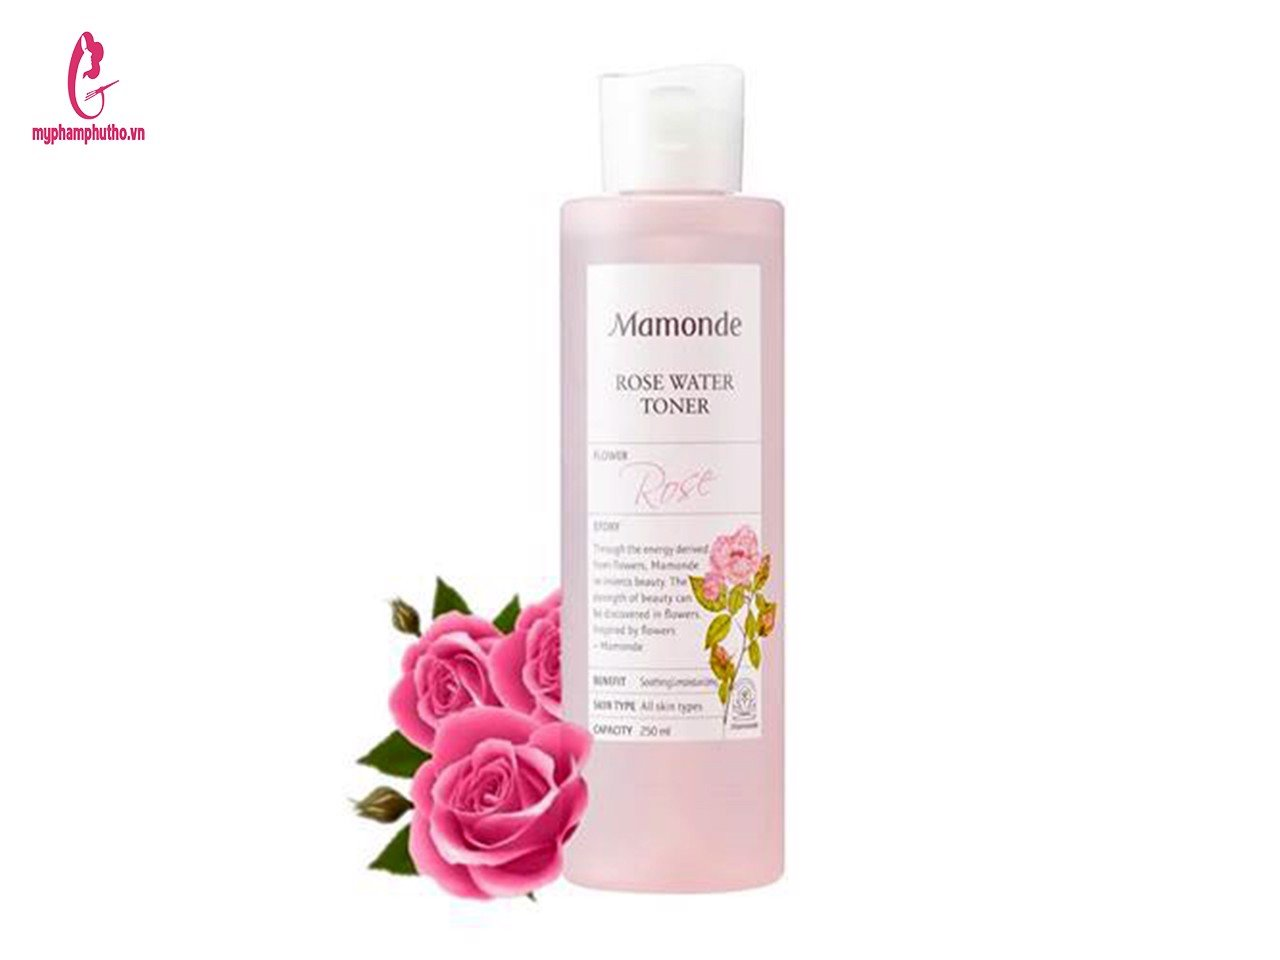 Nước Hoa Hồng Mamonde Rose water Toner Hàn Quốc  In Barcode  Product Recommend  Product Tabs